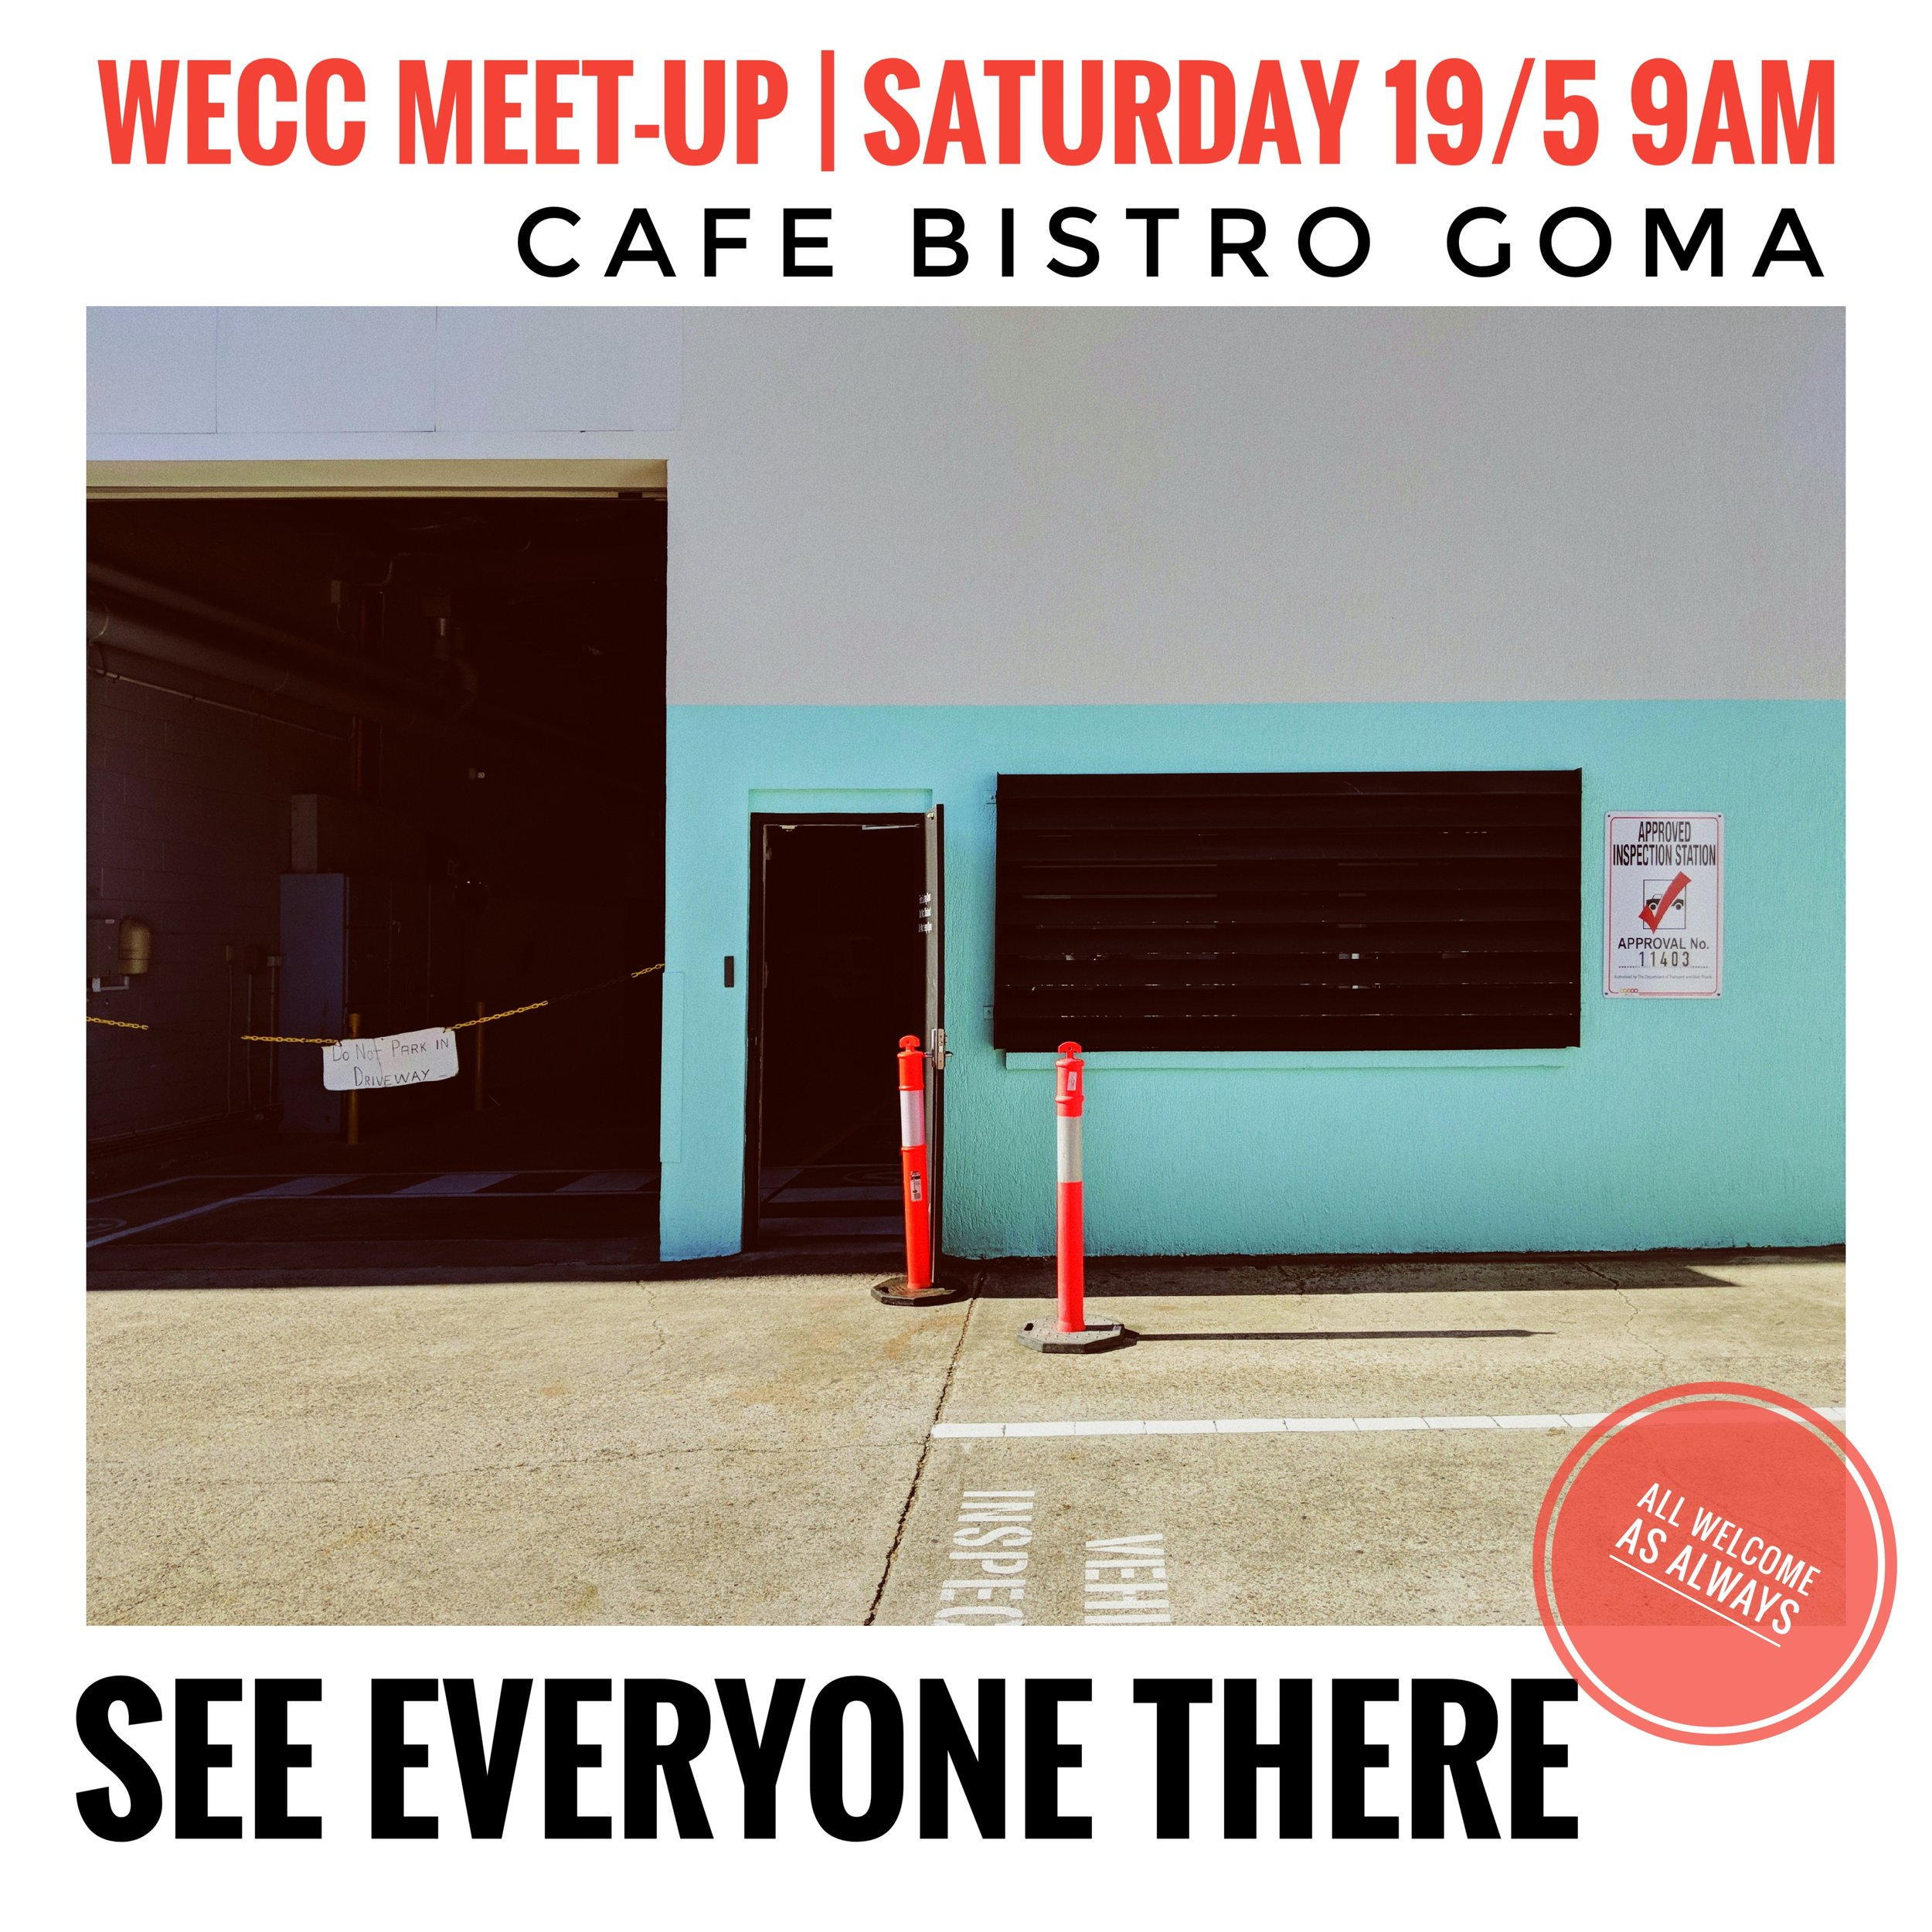 WECC MEET-UP - DATE CHANGESaturday May 19thCafe Bistro GOMAGallery of Modern Art, Stanley Place, South Bank, South Brisbane,Outside on the Waterfront2pm-5pm